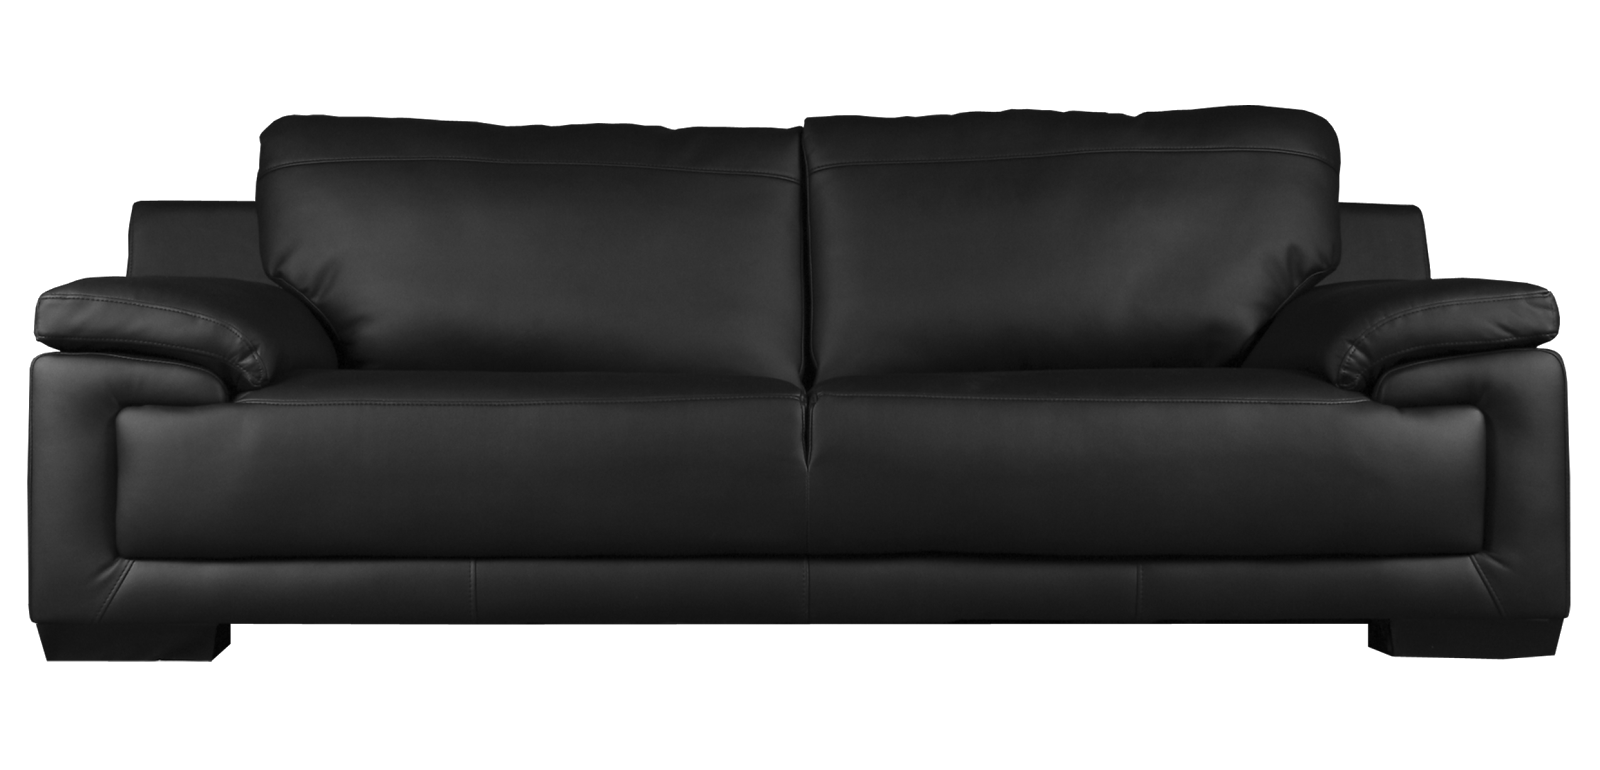 Sofa png image purepng. Couch clipart living room furniture